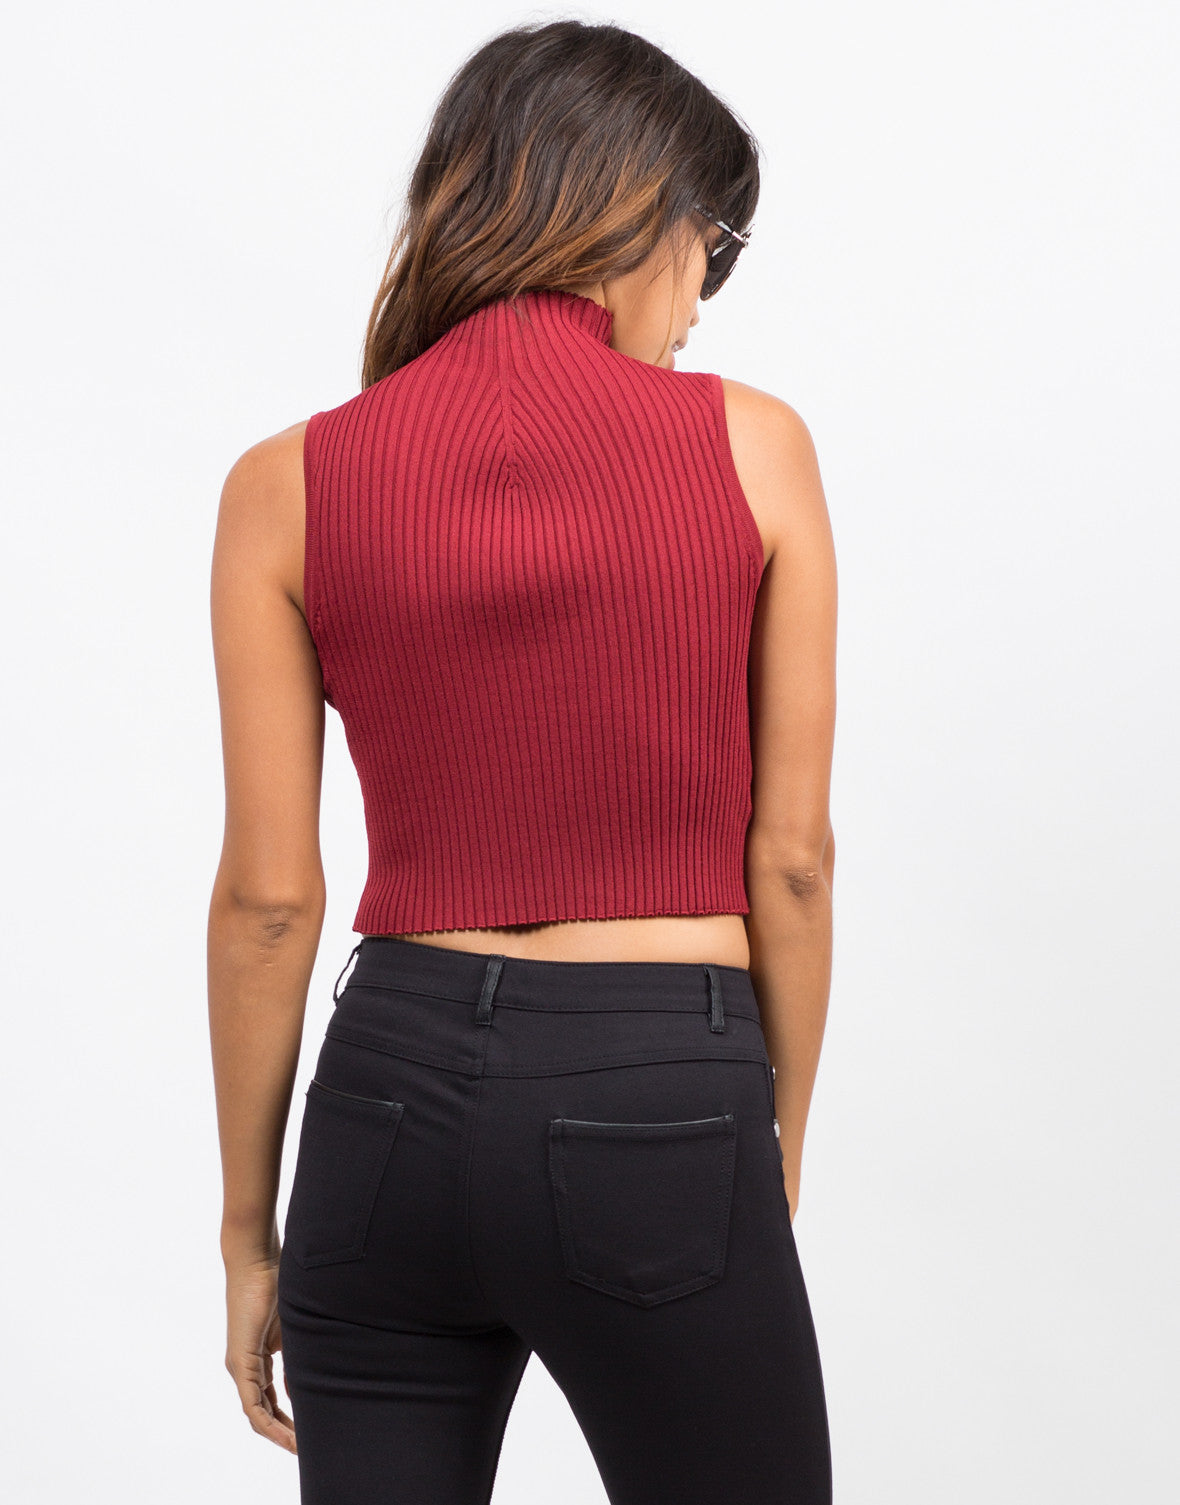 Back View of High Neck Stretchy Ribbed Tank